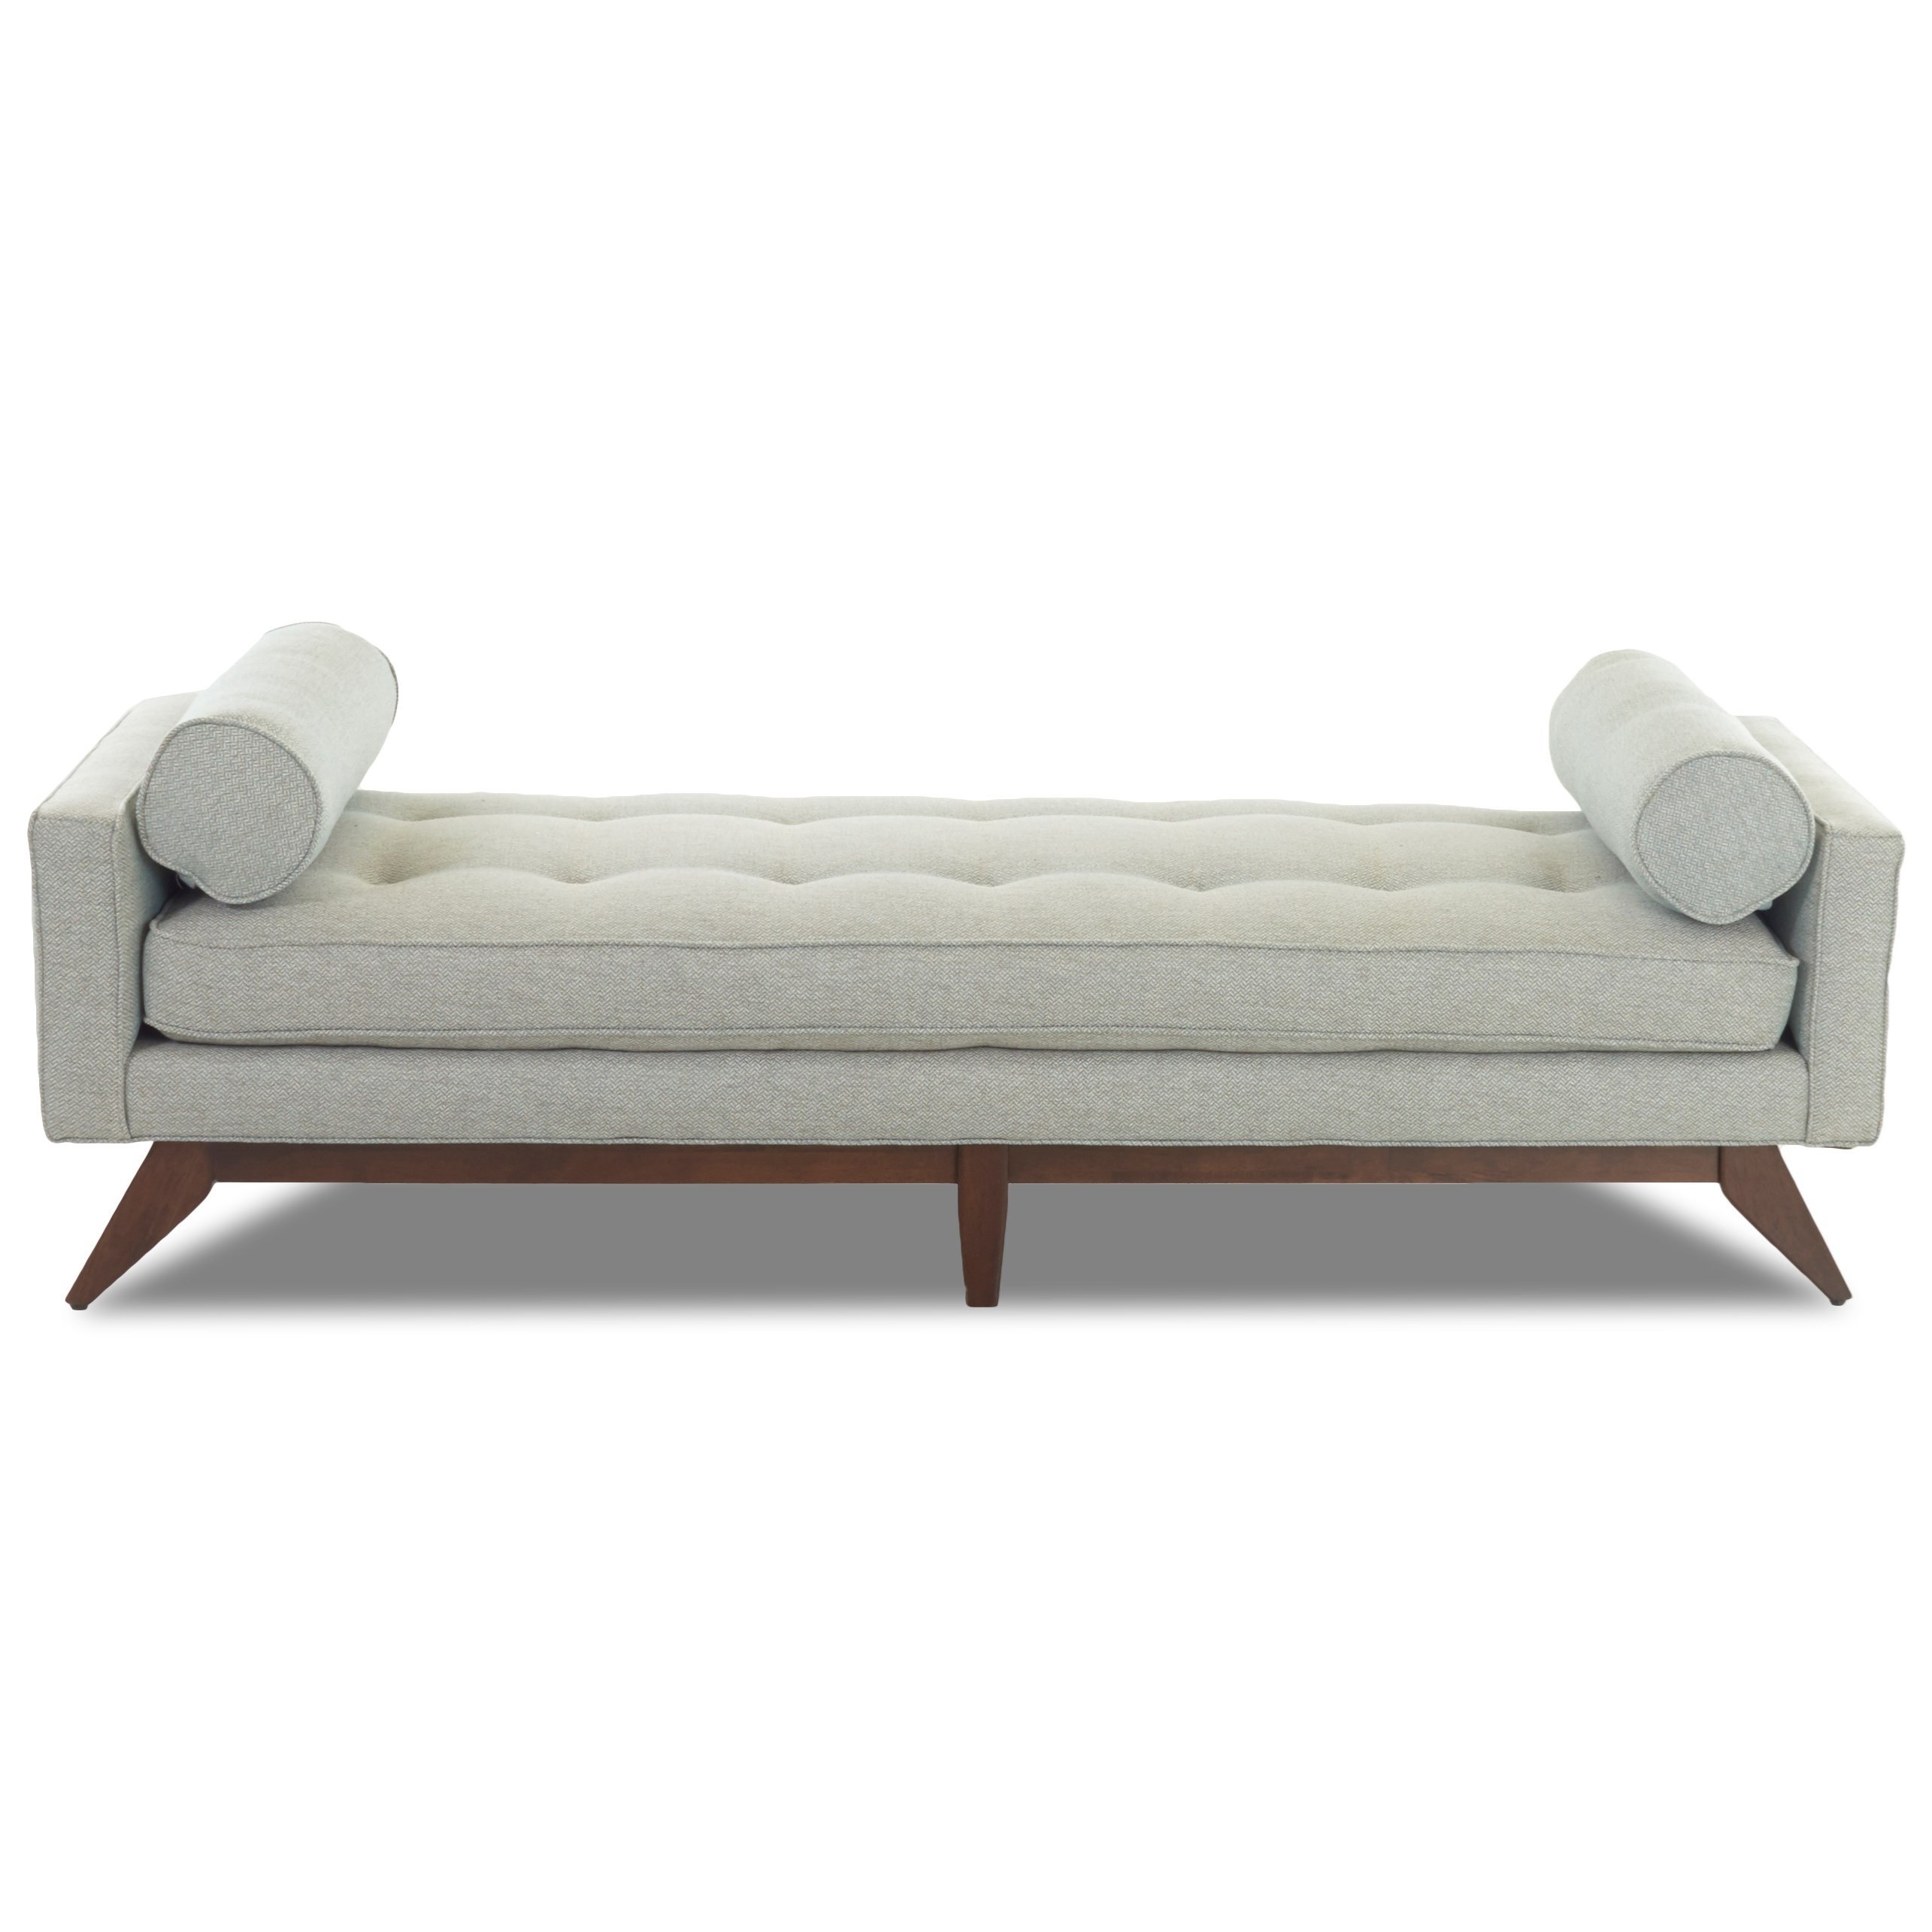 Mid-Century Modern Backless Sofa/Bench By Klaussner